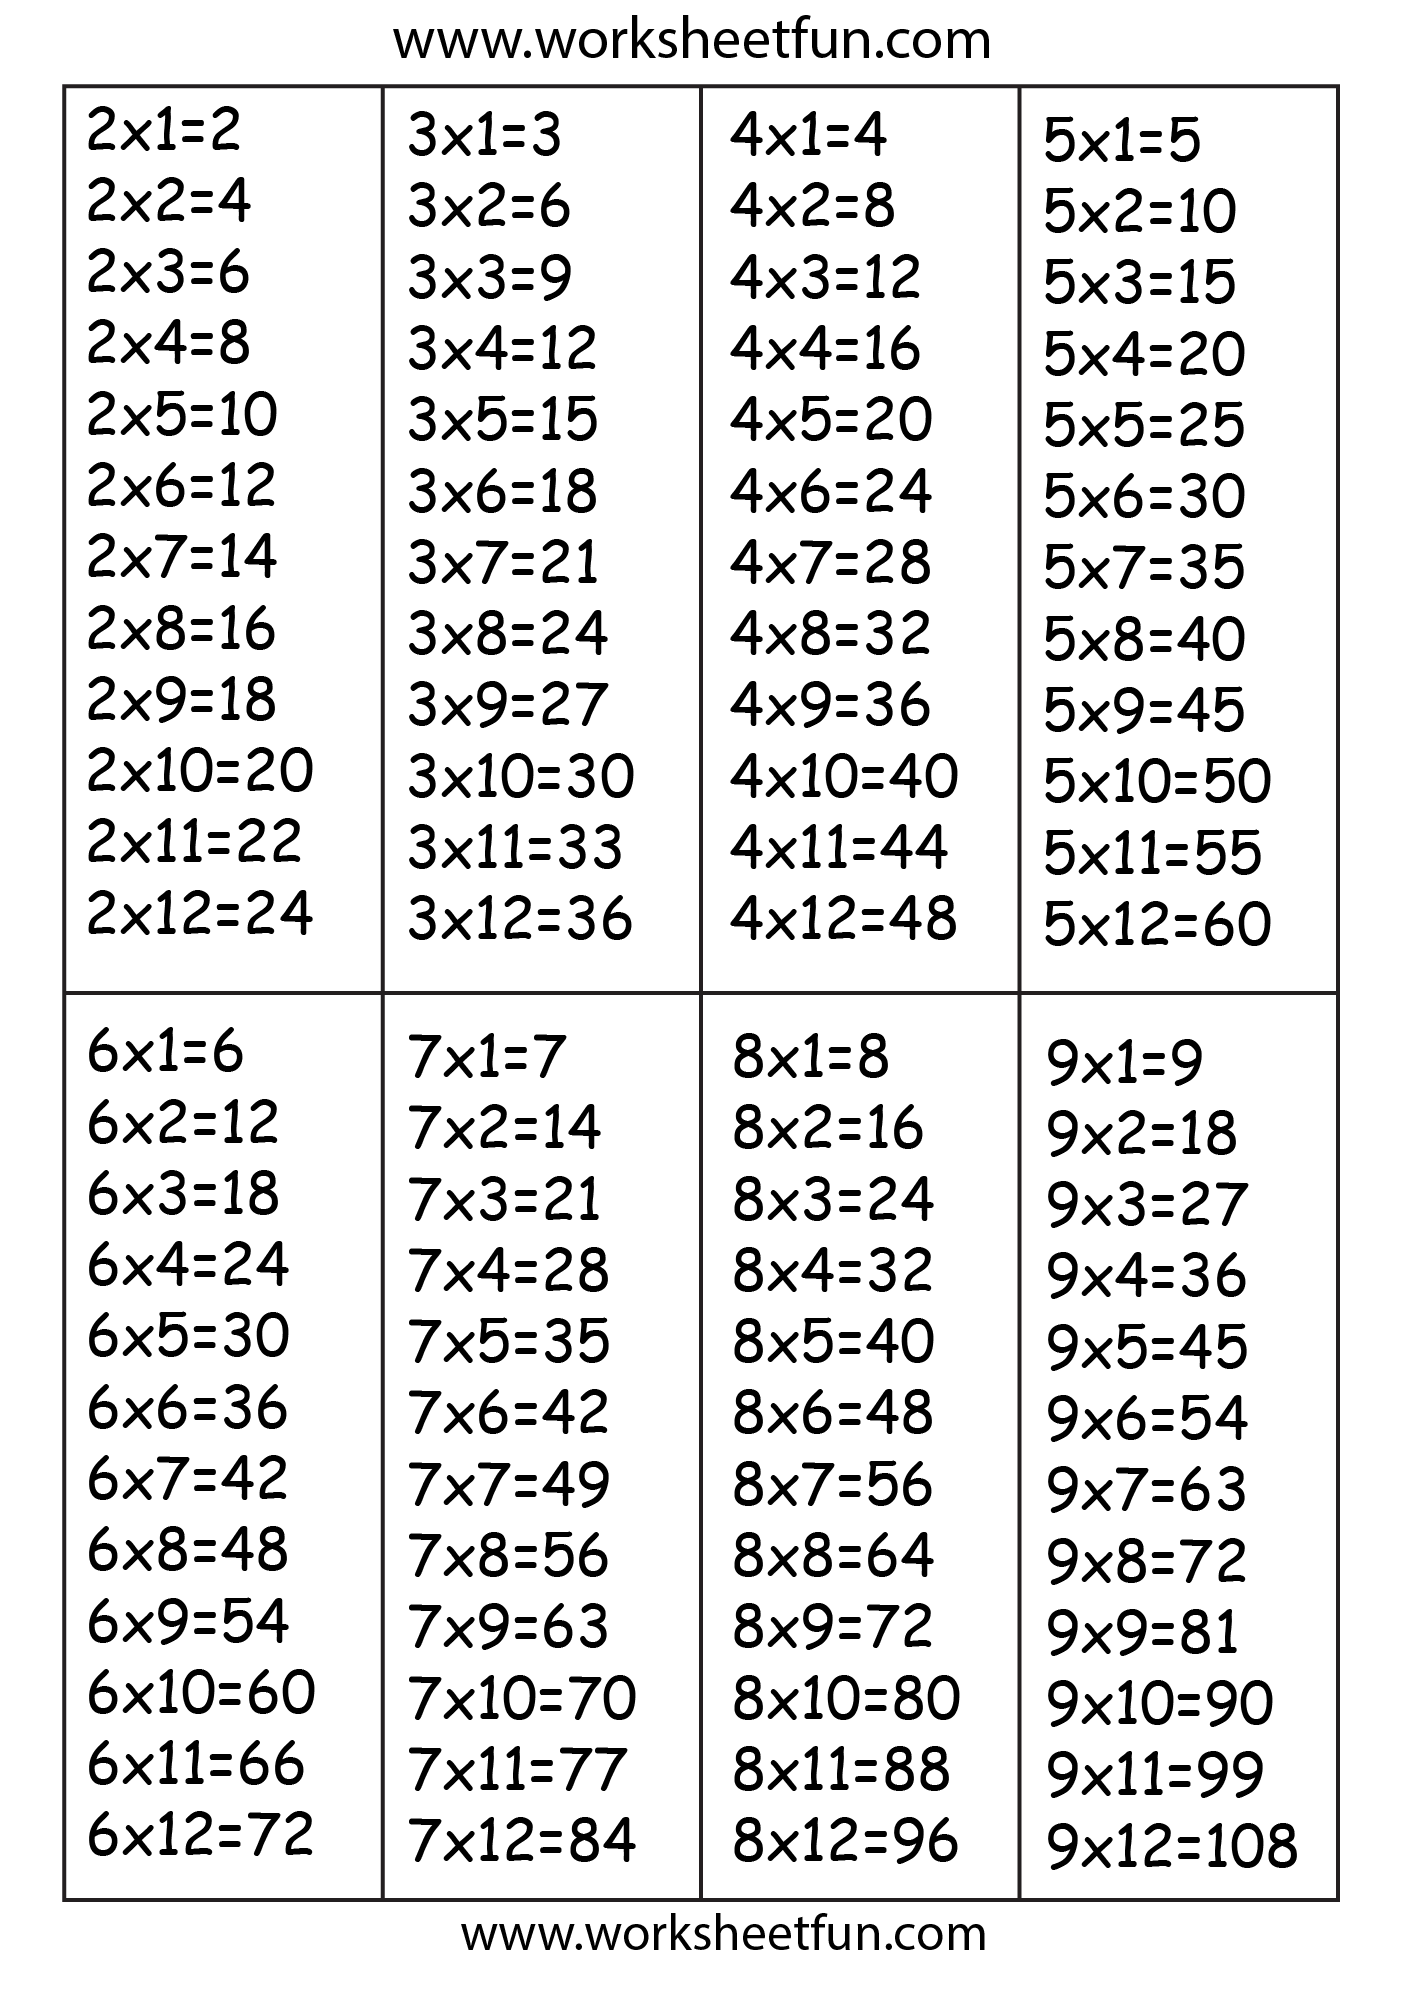 worksheet Two Times Table Worksheet times table 2 free printable worksheets worksheetfun chart 3 4 5 6 7